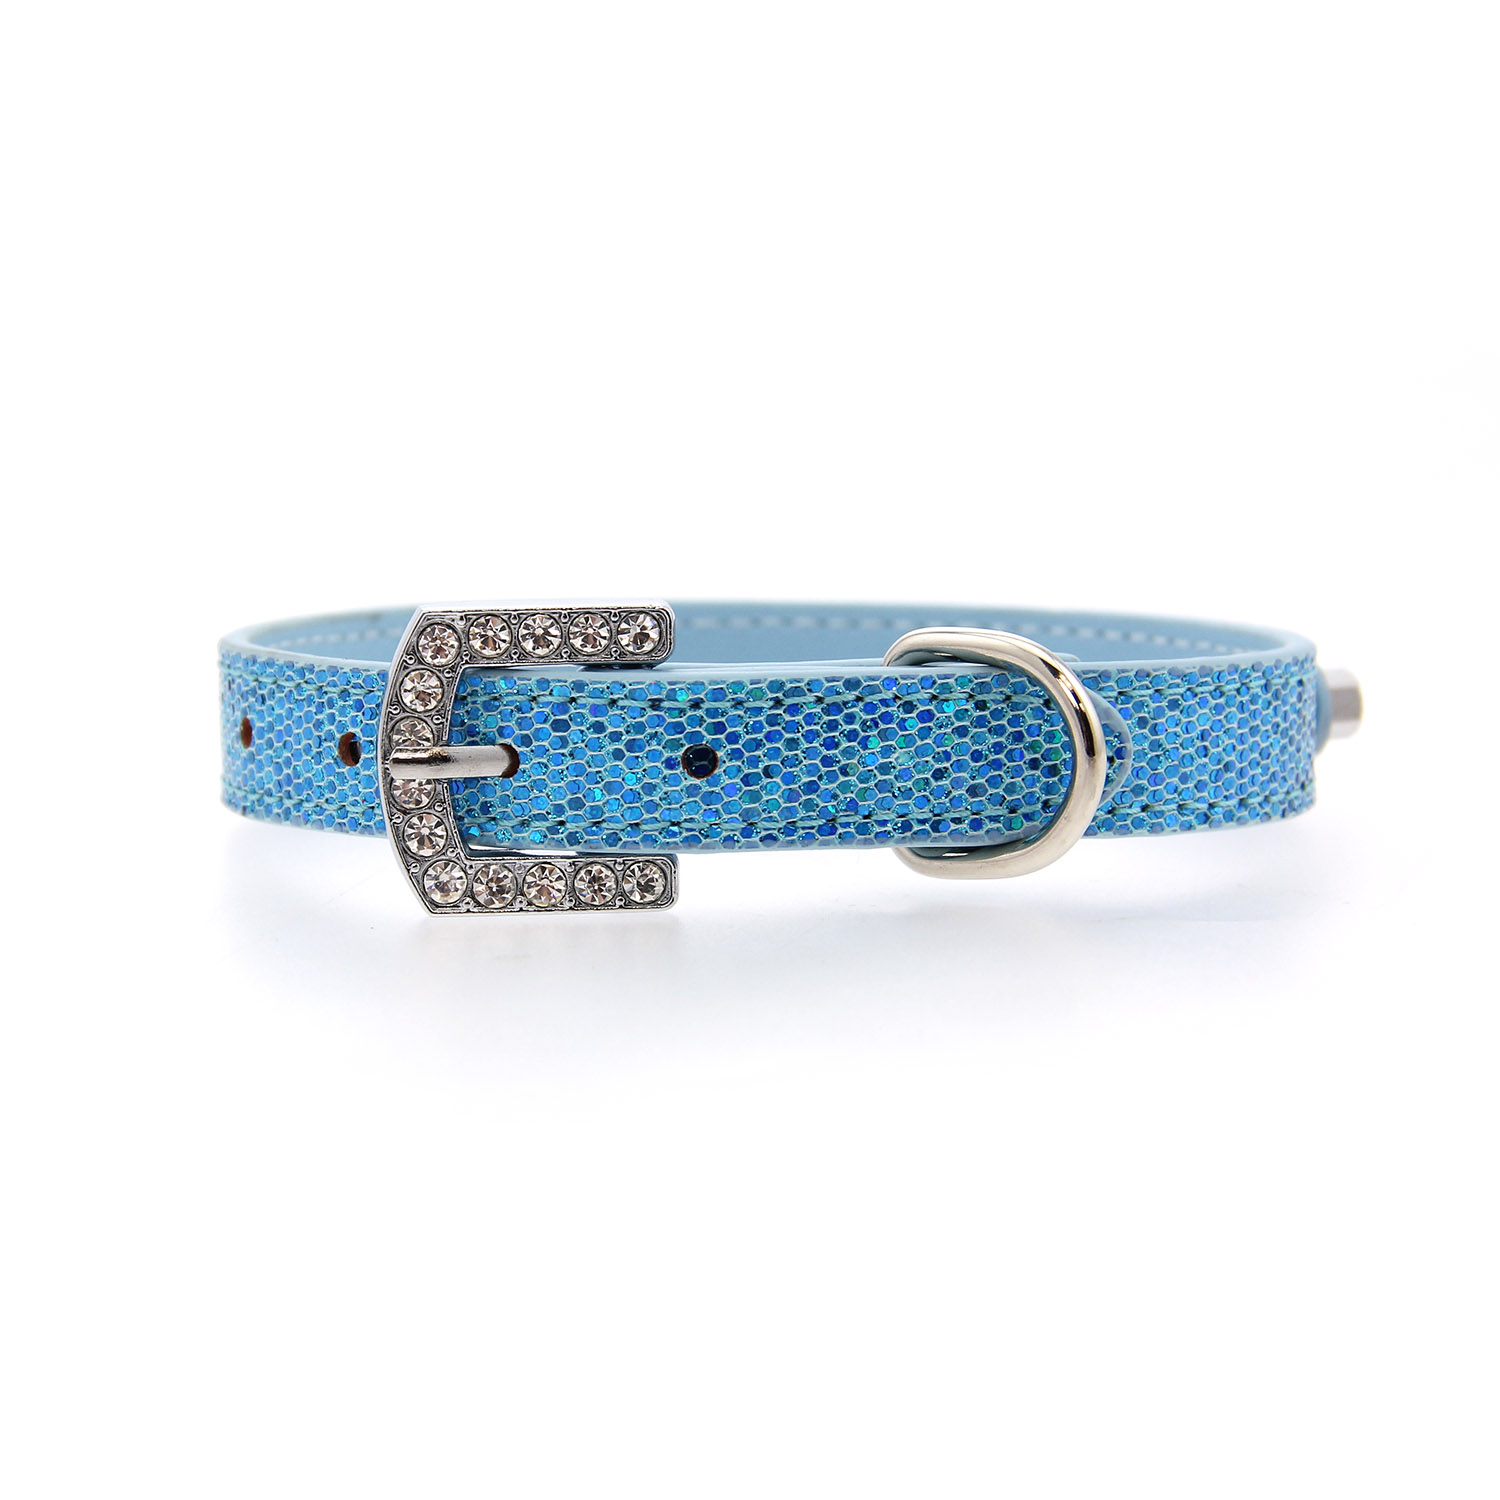 Parisian Pet Paillette Dog Collar - Blue